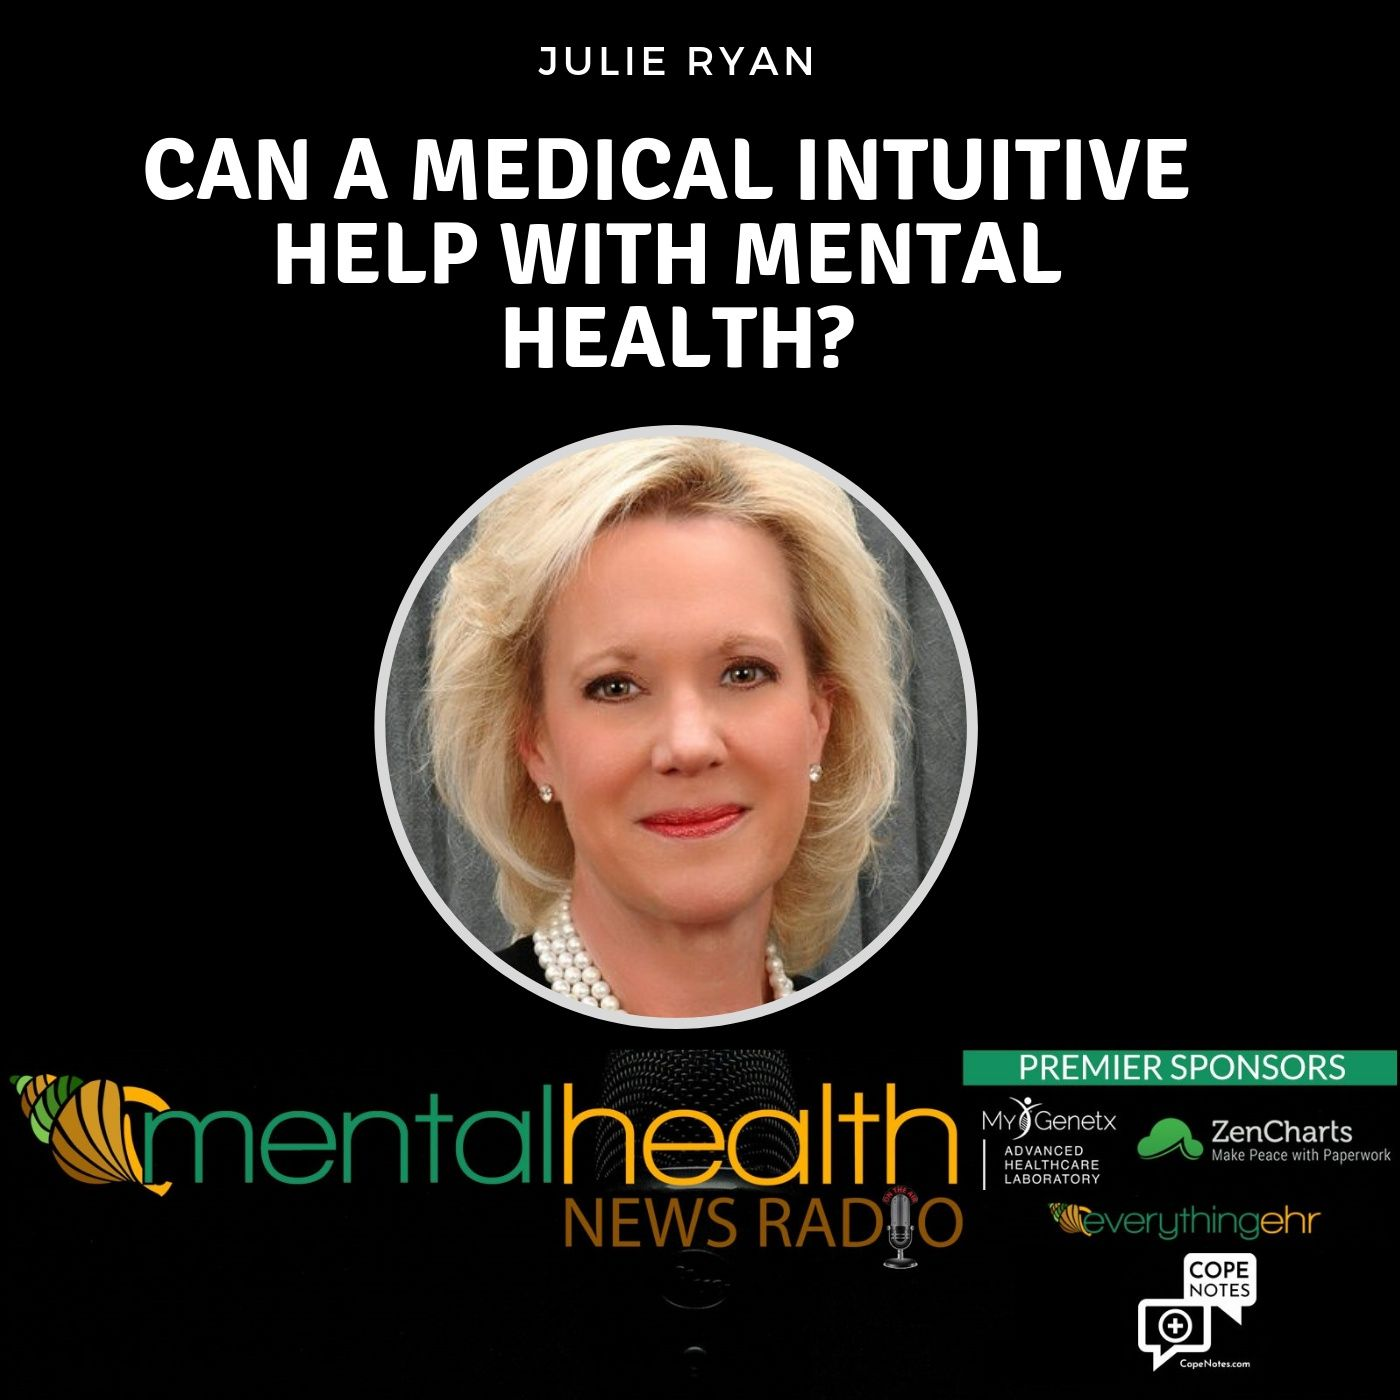 Mental Health News Radio - Can a Medical Intuitive Help with Mental Health?